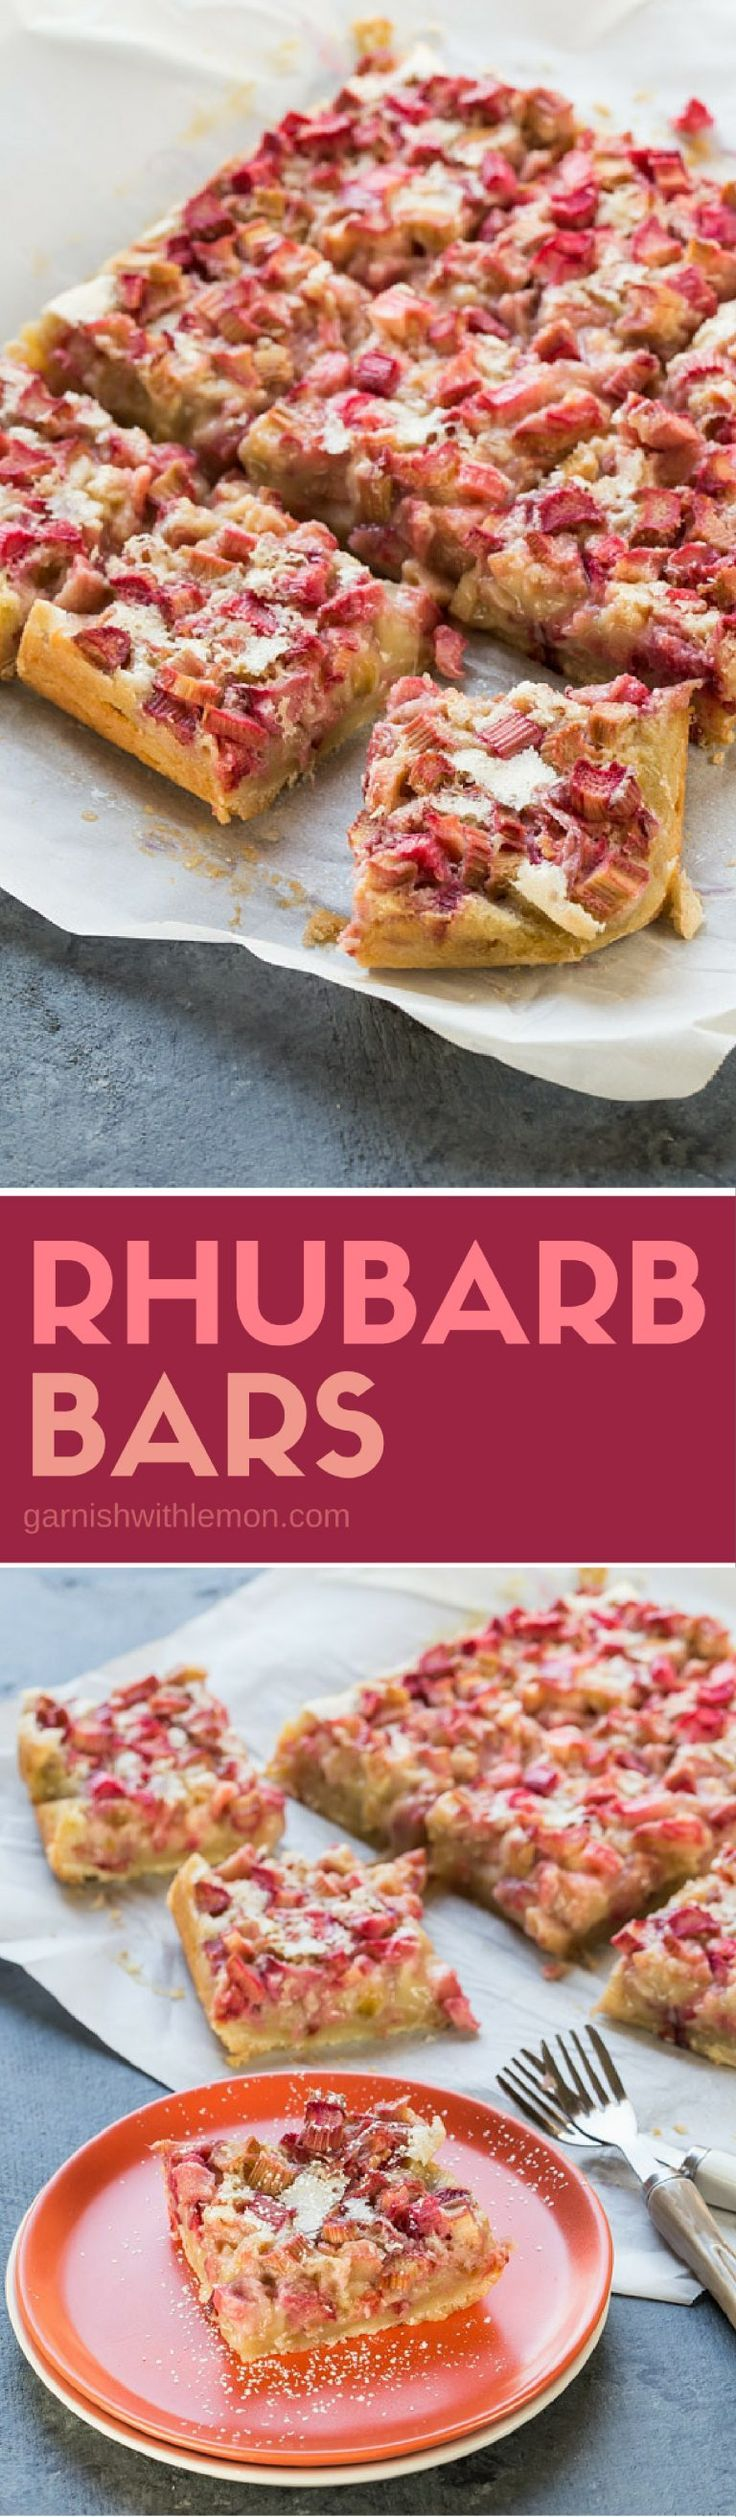 Rhubarb lovers unite! Spring is here in full force, and that means my rhubarb is coming in strong. These Easy Rhubarb Bars are the perfect way to let the tangy flavor shine through in all its glory.